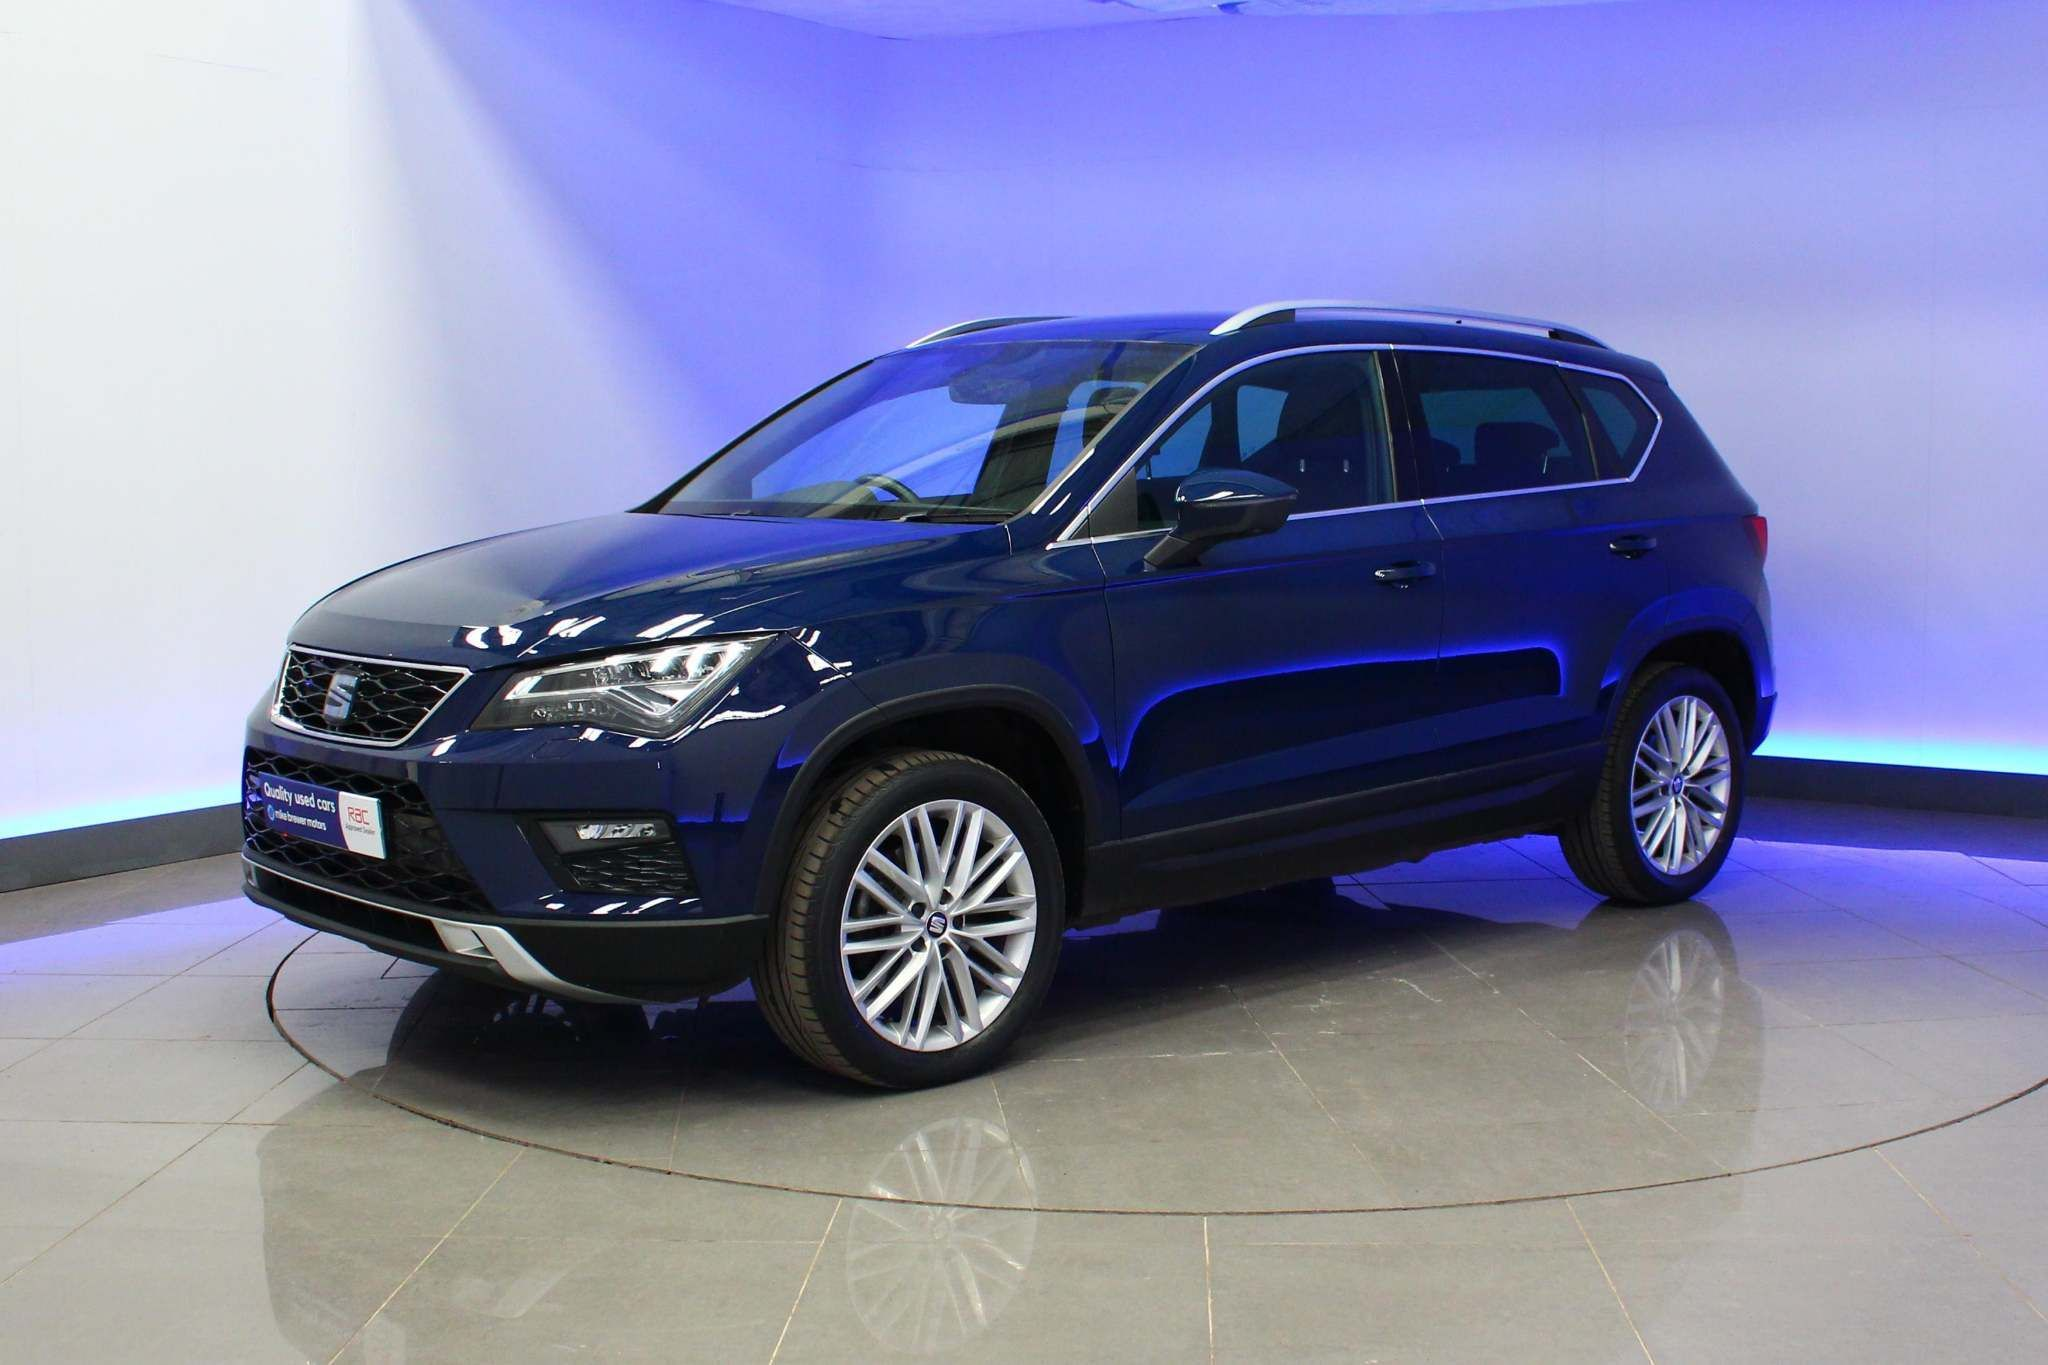 Used  SEAT Ateca XCELLENCE